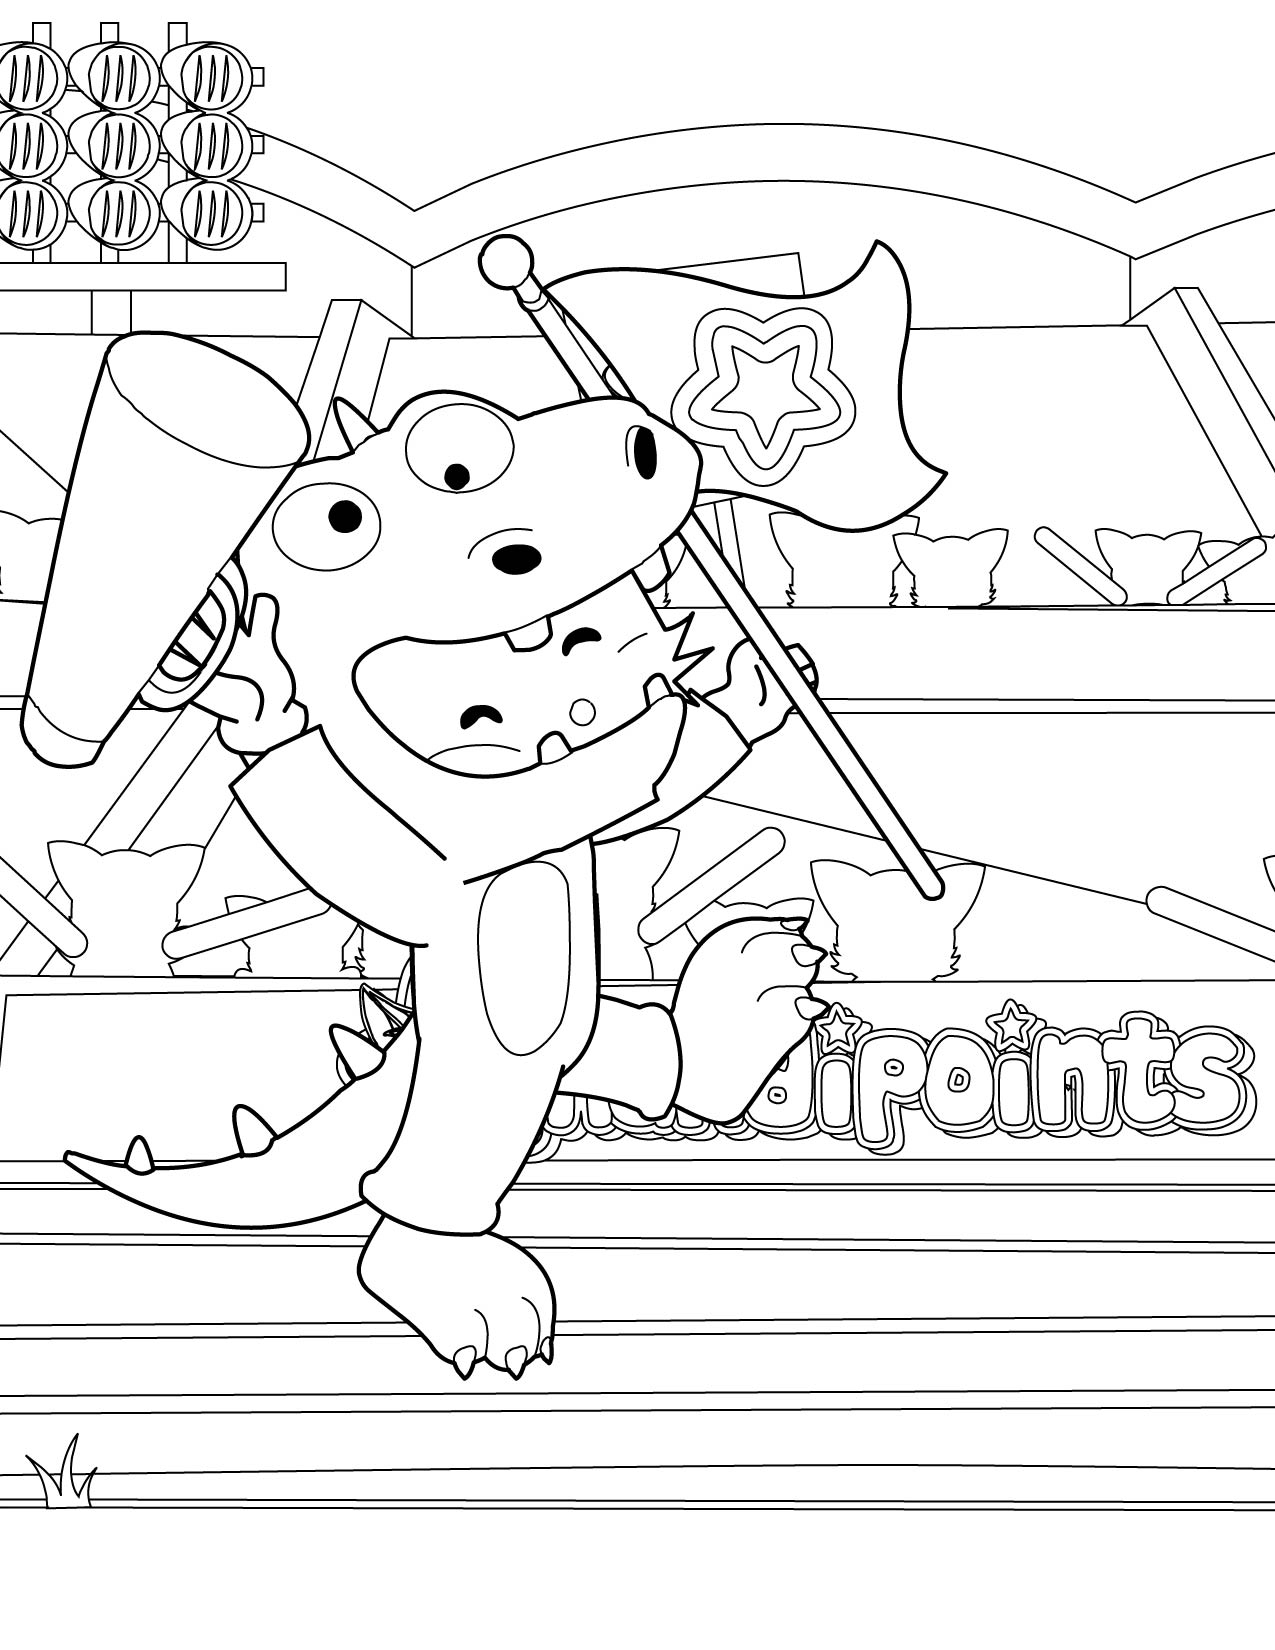 seahawks coloring pages to print seattle seahawks logo drawing at getdrawings free download seahawks coloring pages to print